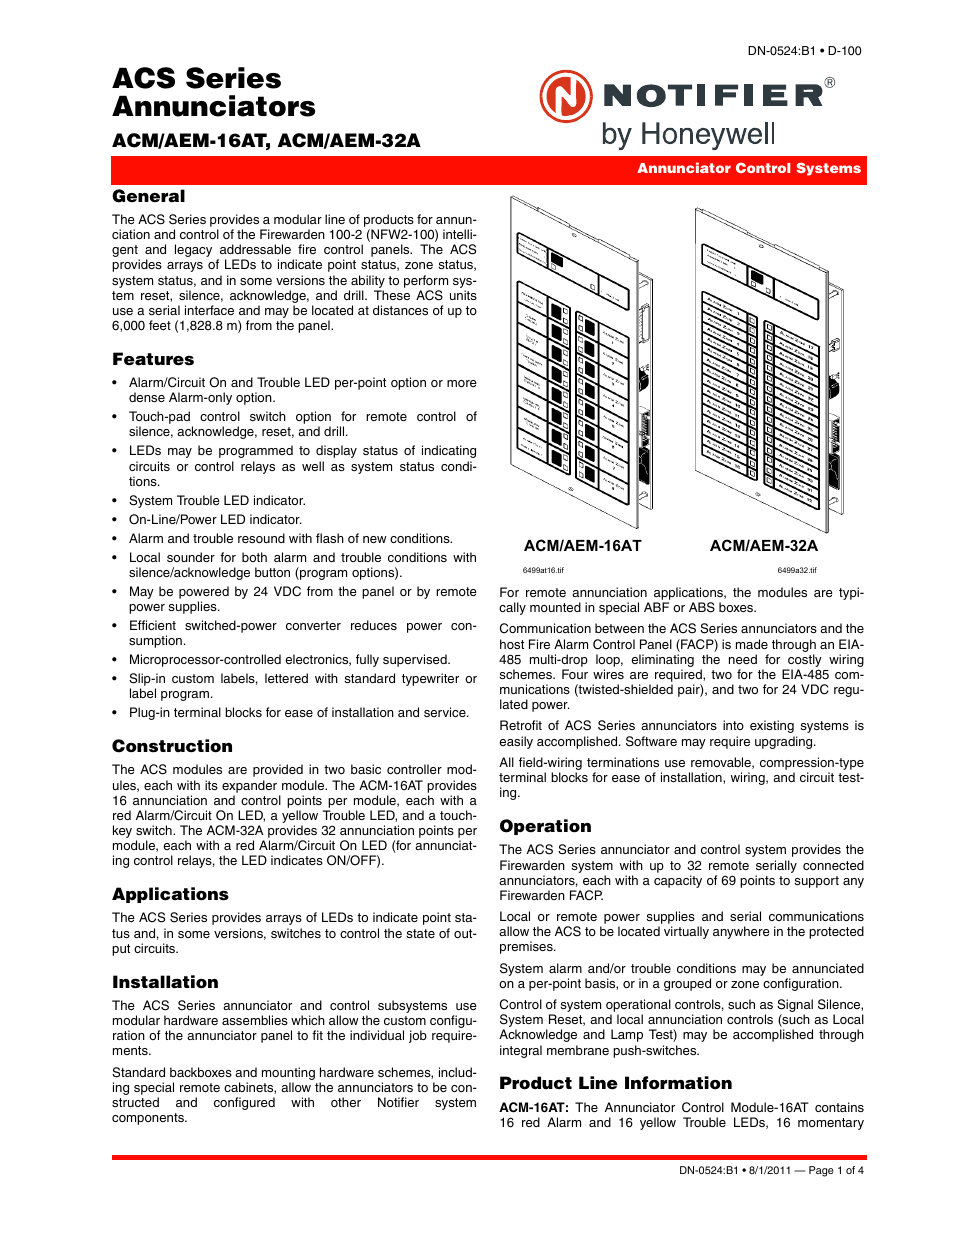 Notifier ACM/AEM-32A User Manual | 4 pages | Also for: ACM/AEM-16AT